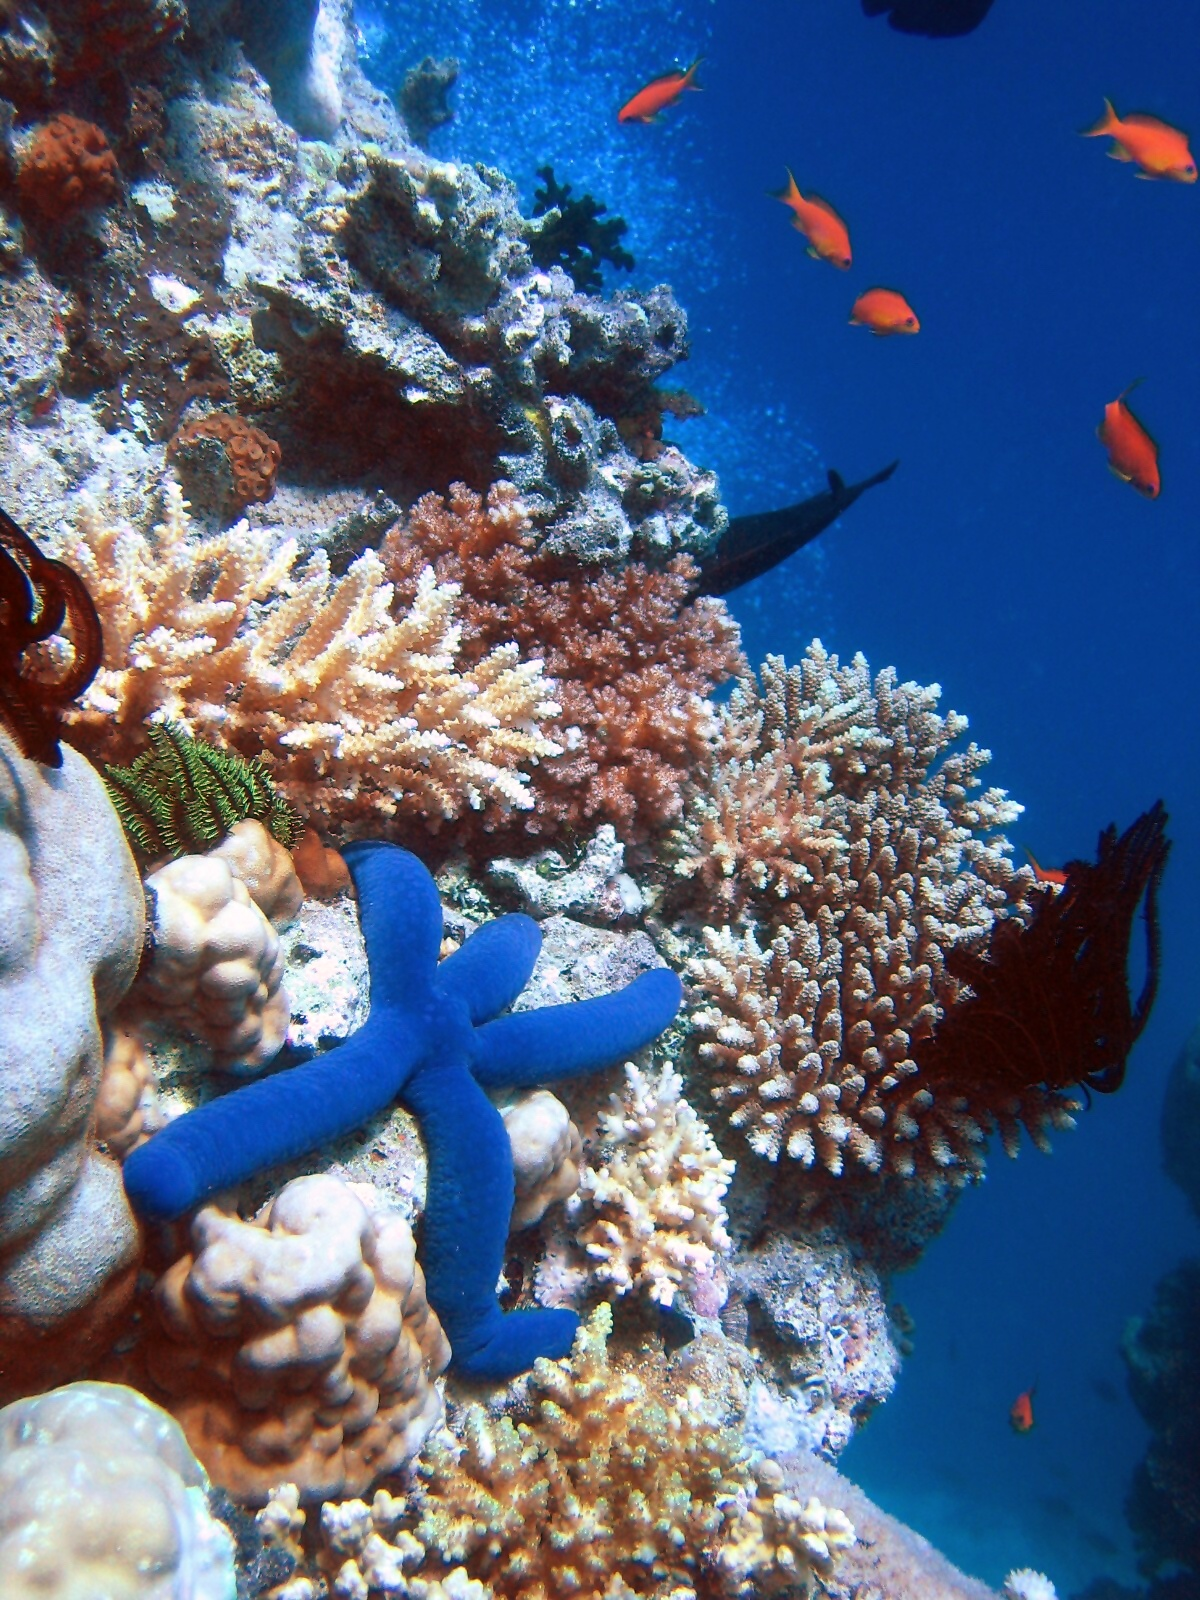 Starfish on coral, Great Barrier Reef